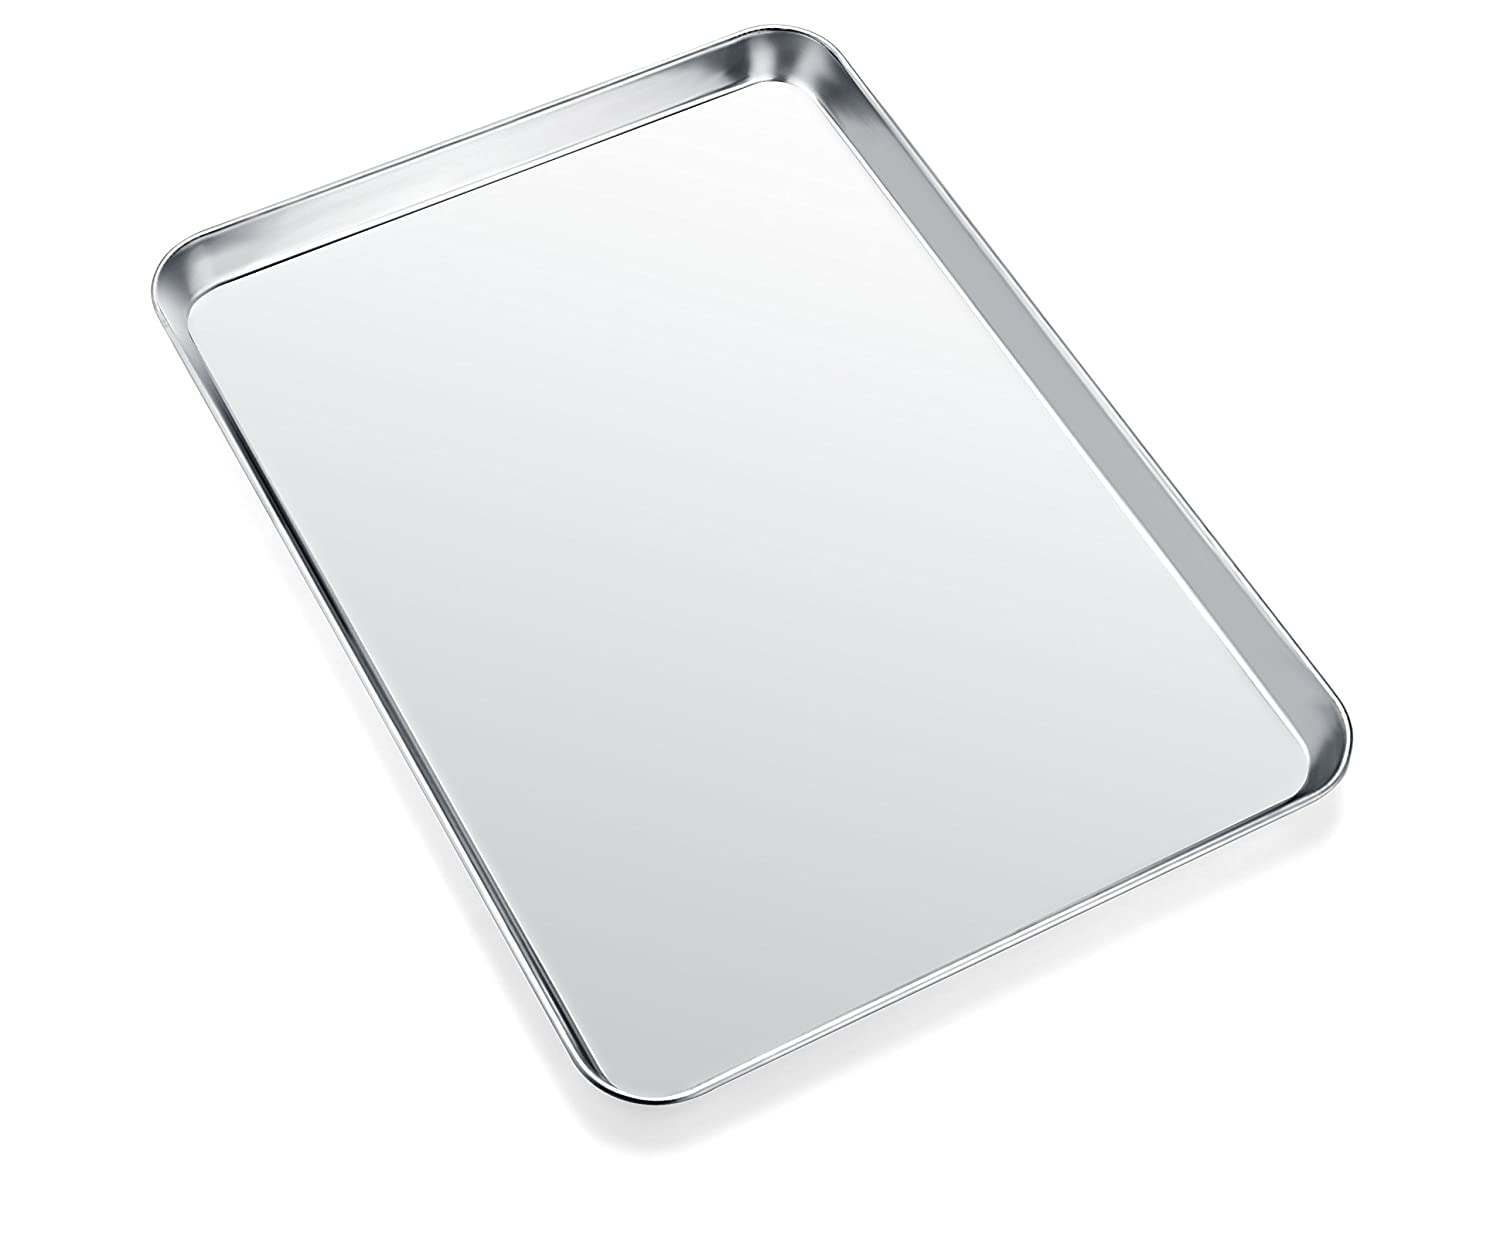 Baking Sheet, Zacfton Cookie Sheet Stainless Steel Toaster Oven Tray Pan Rectangle Size 12 x 10 x 1 inch, Non Toxic & Healthy,Superior Mirror Finish & Easy Clean, Dishwasher Safe (12inch)